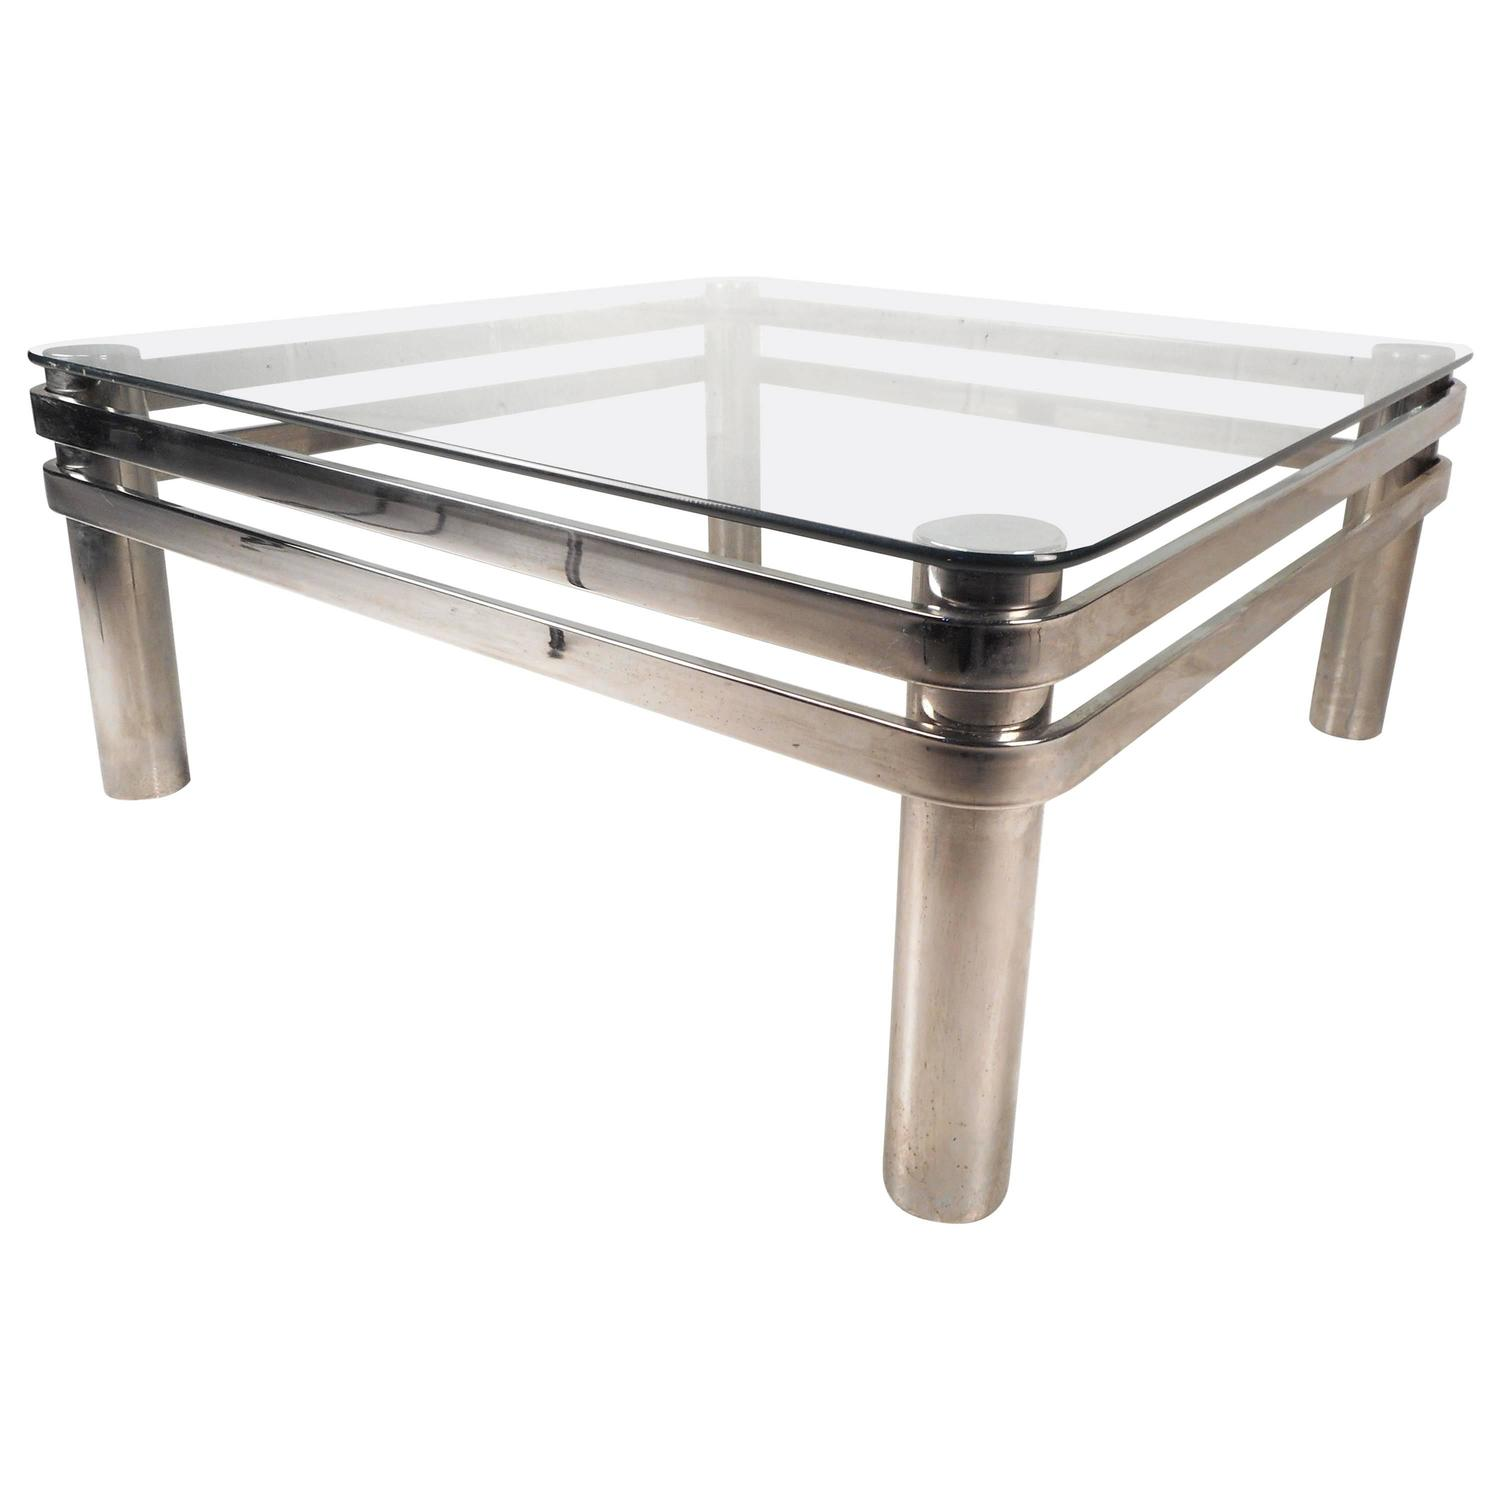 Mid Century Modern Tubular Chrome And Glass Coffee Table At 1stdibs